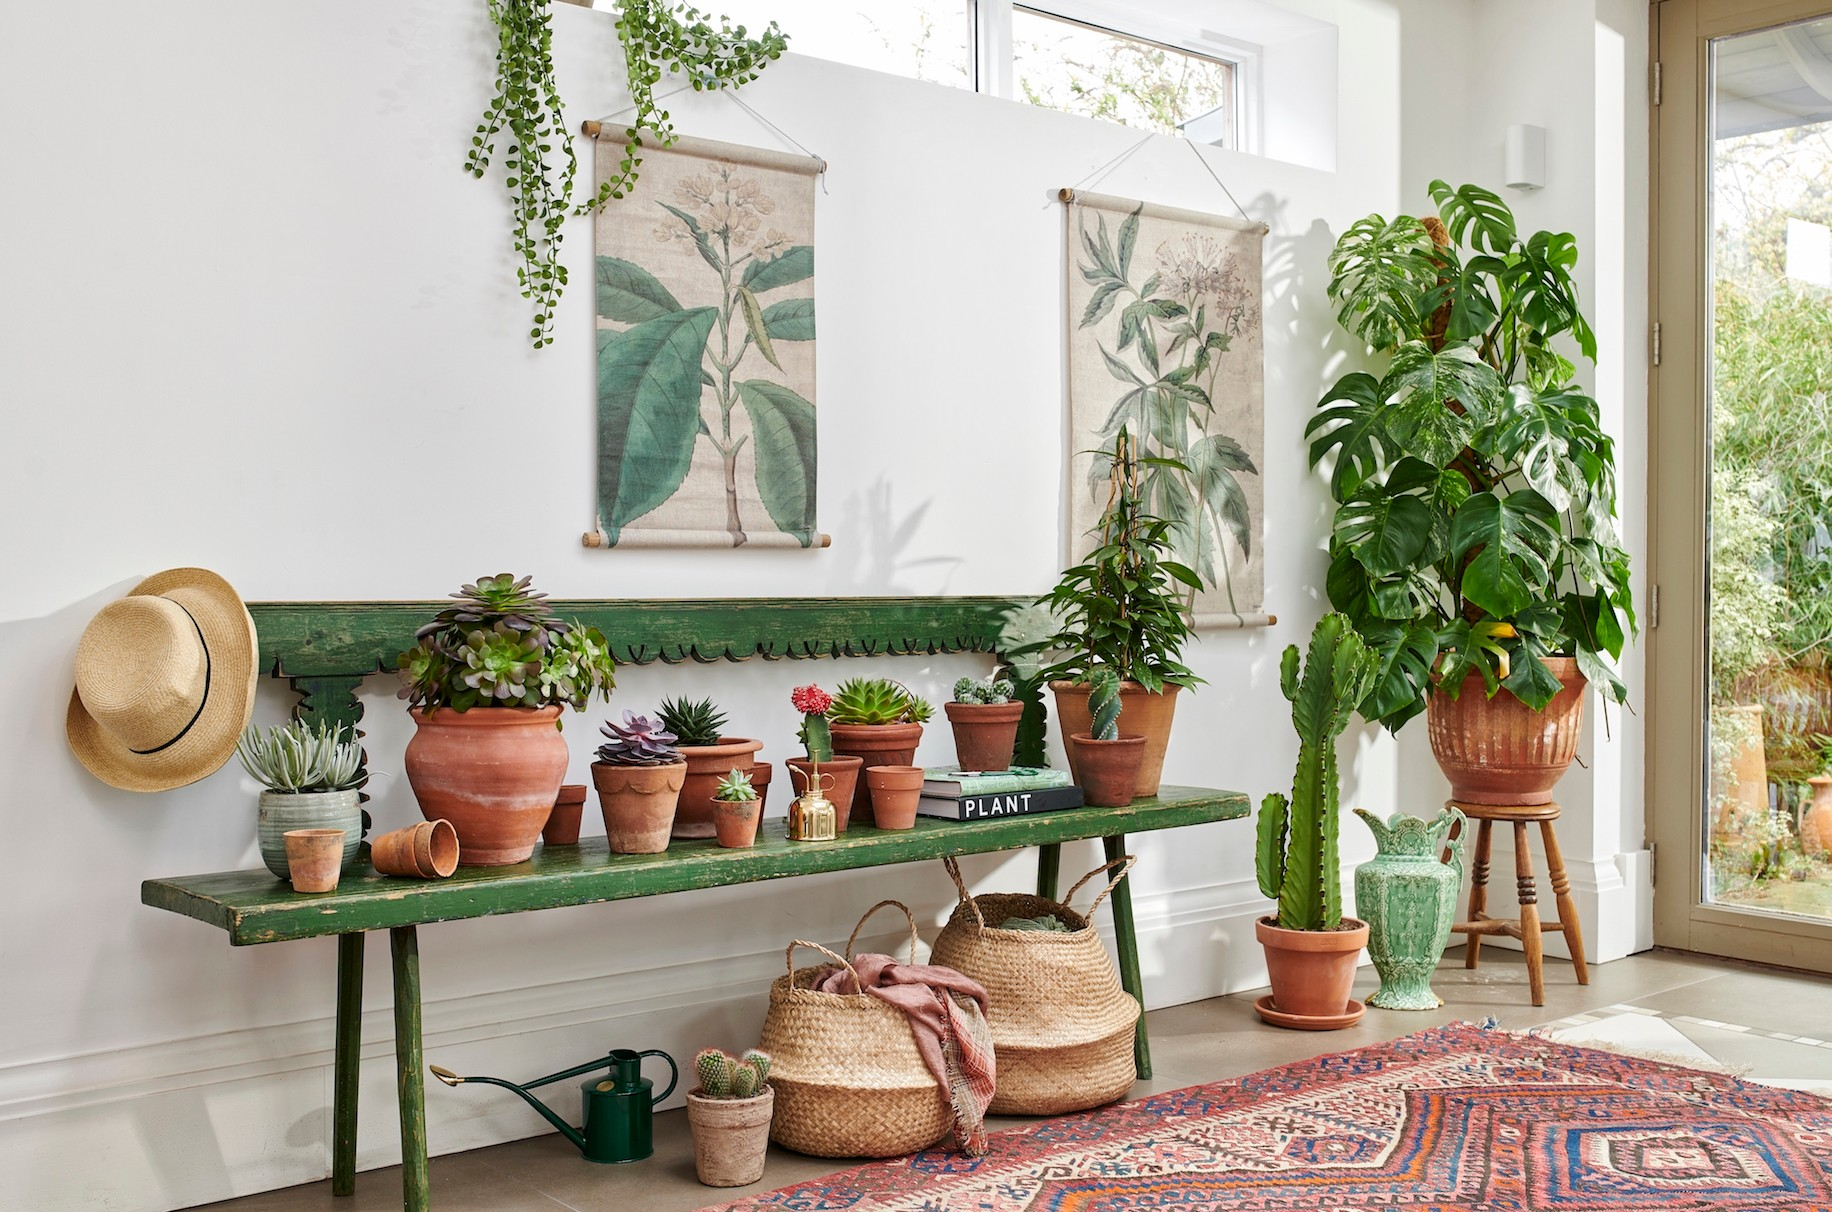 Antiques and plants